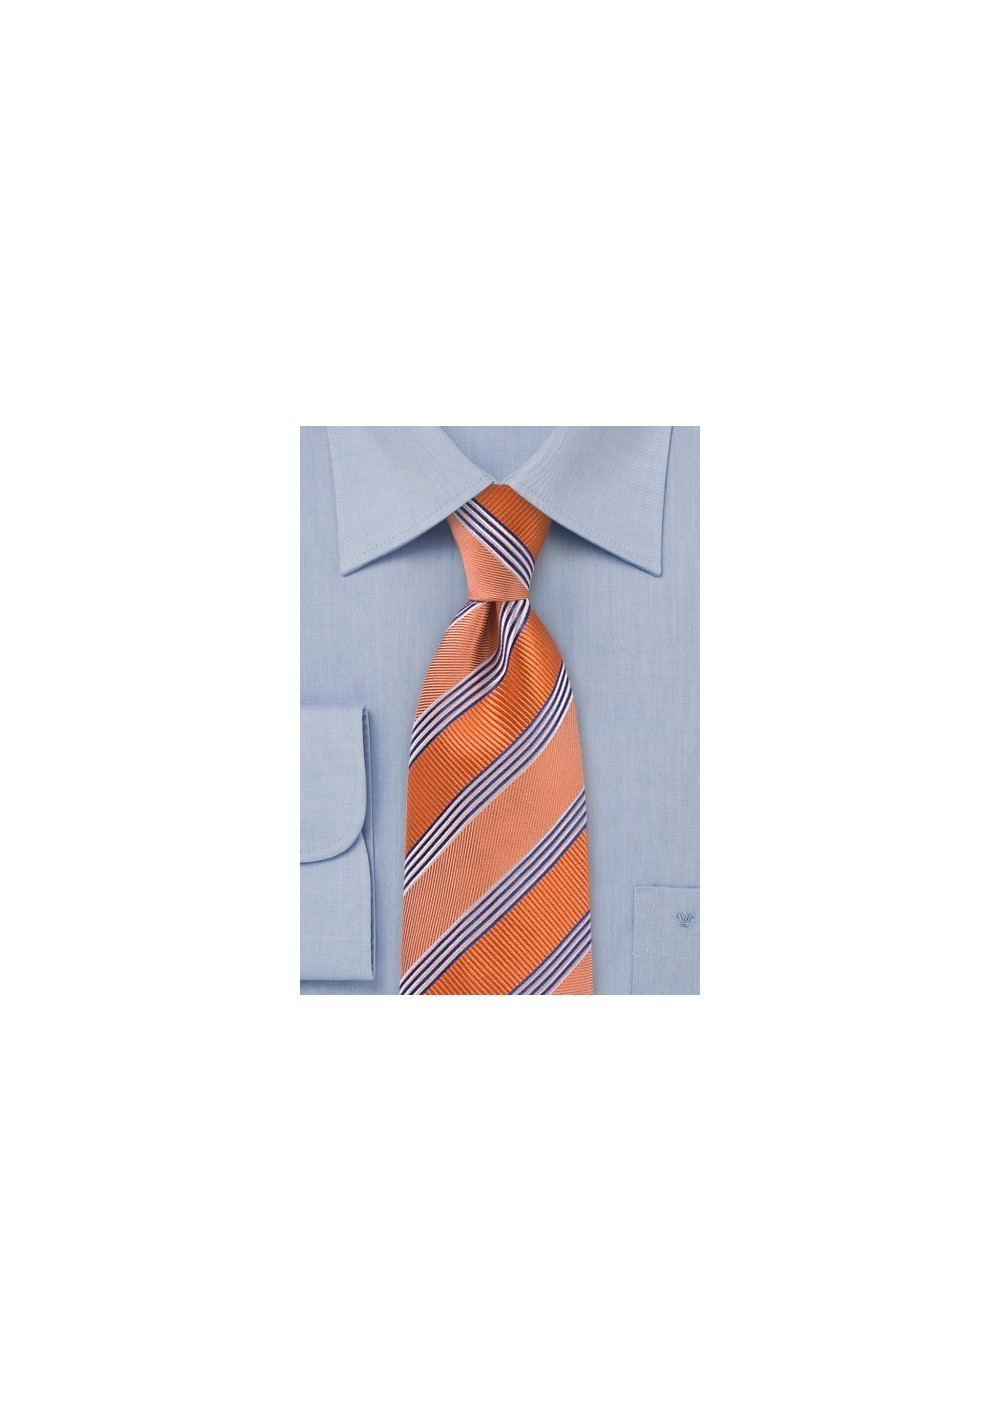 Vivid Tangerine Striped Tie